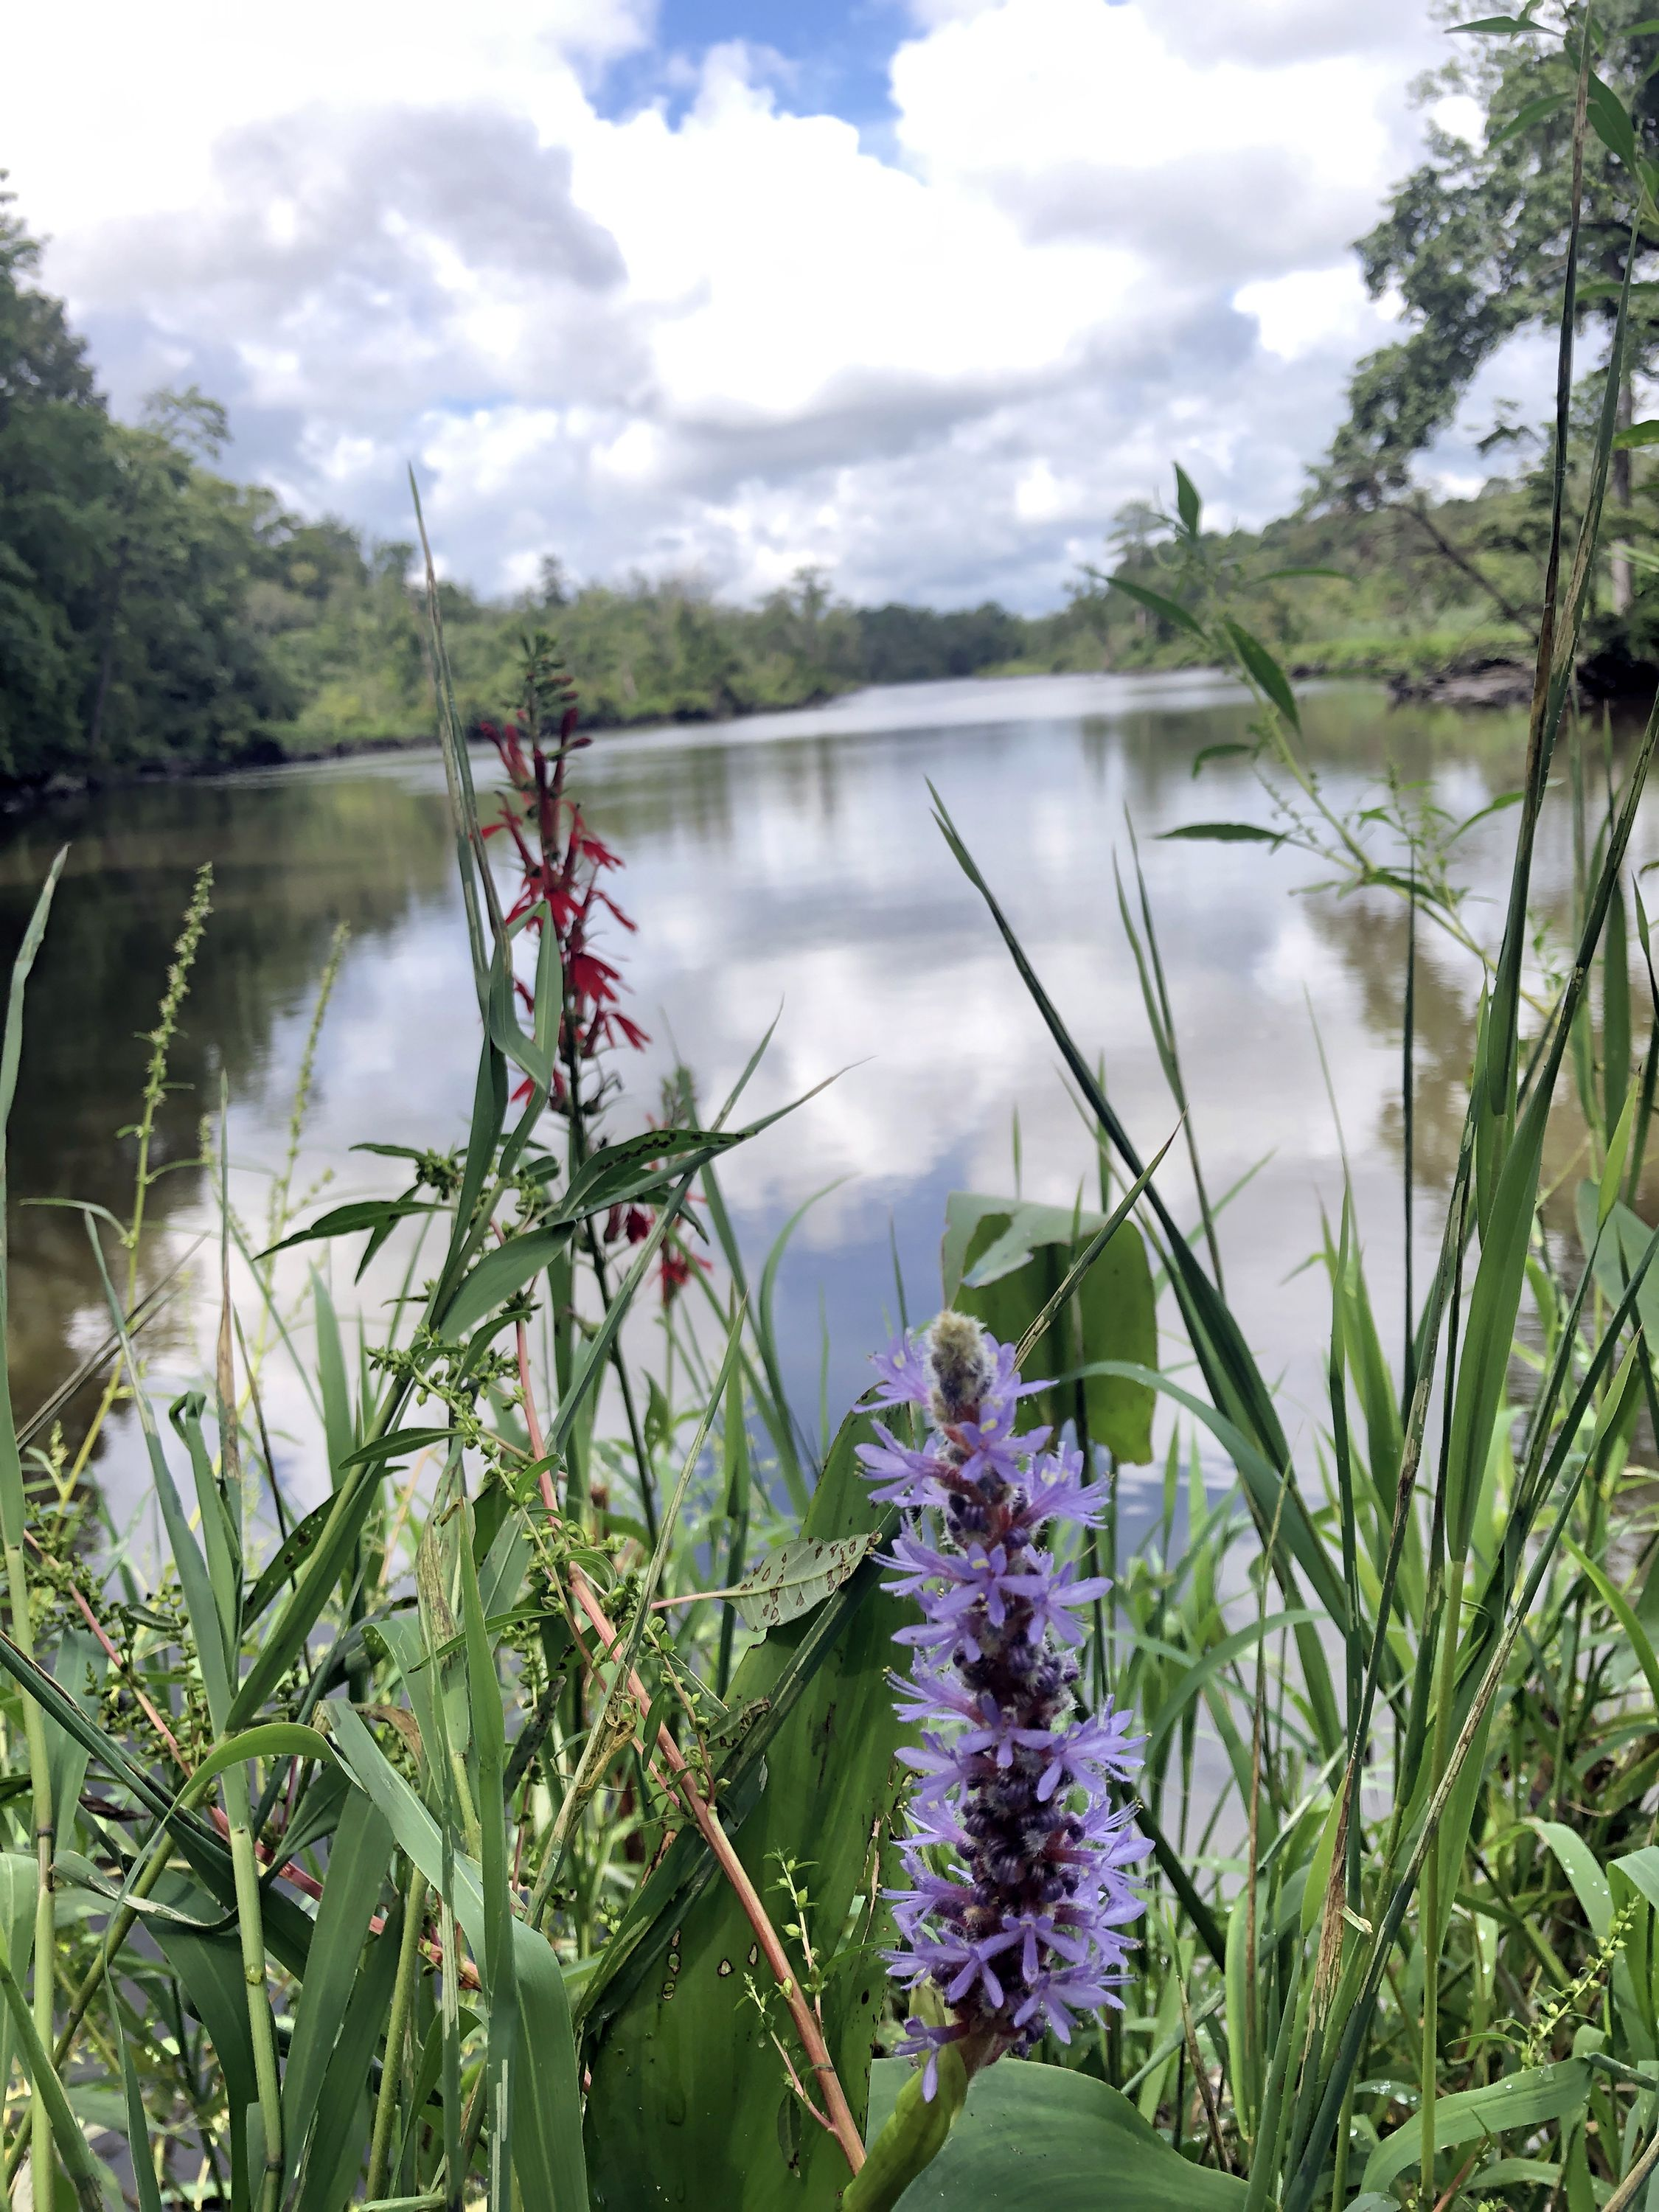 Two plants, one with thin red flowers and the other dense purple blooms, grow on the banks of a wide river. Tall shoots of grass grow up around the flowers. White clouds are reflected on the water.